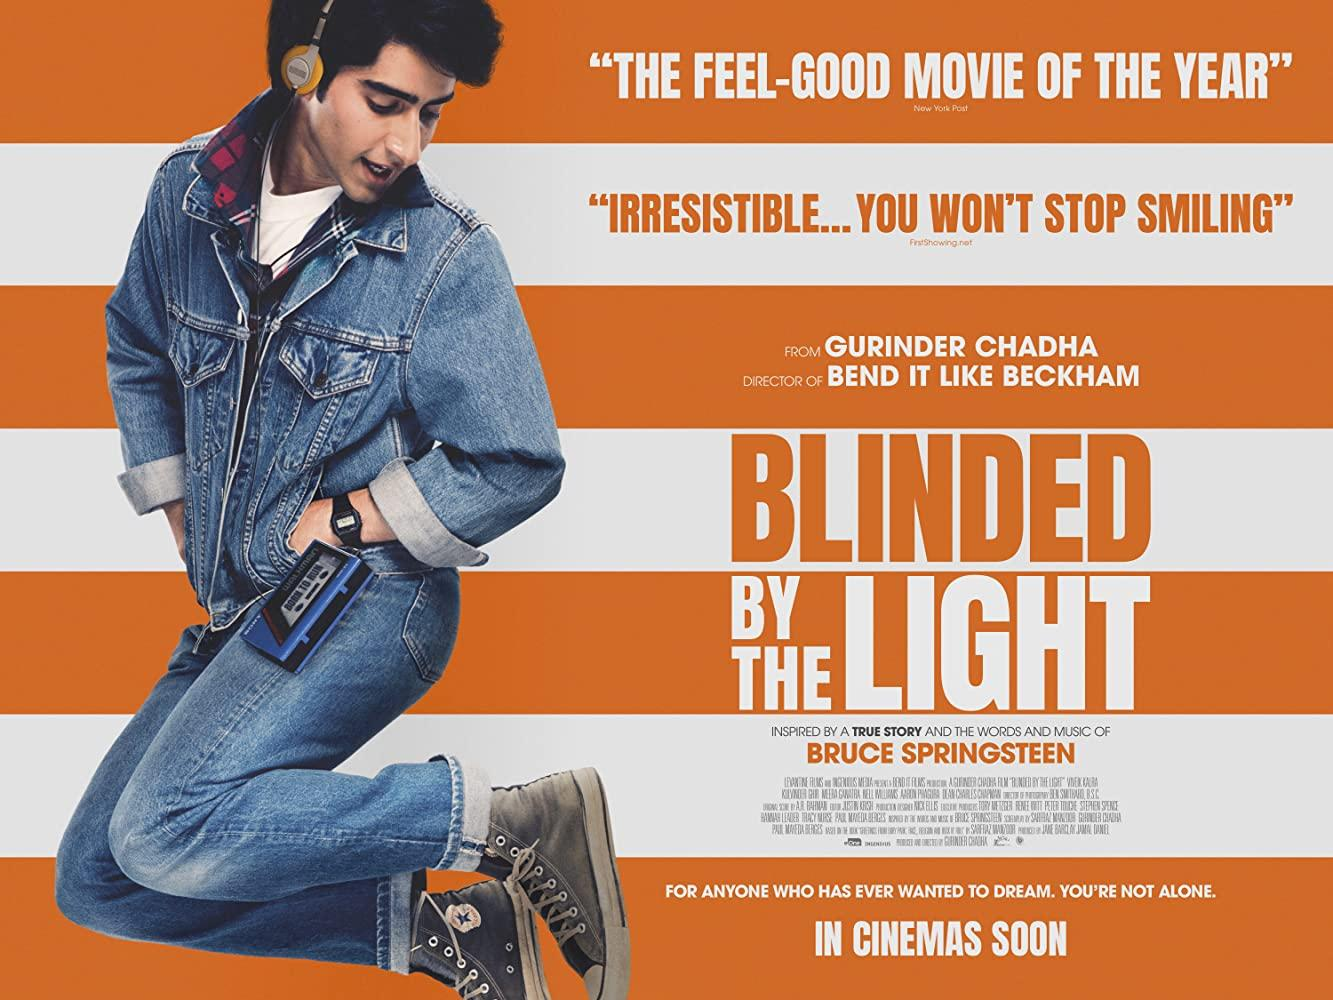 مشاهدة فيلم Blinded by the Light (2019) مترجم HD اون لاين